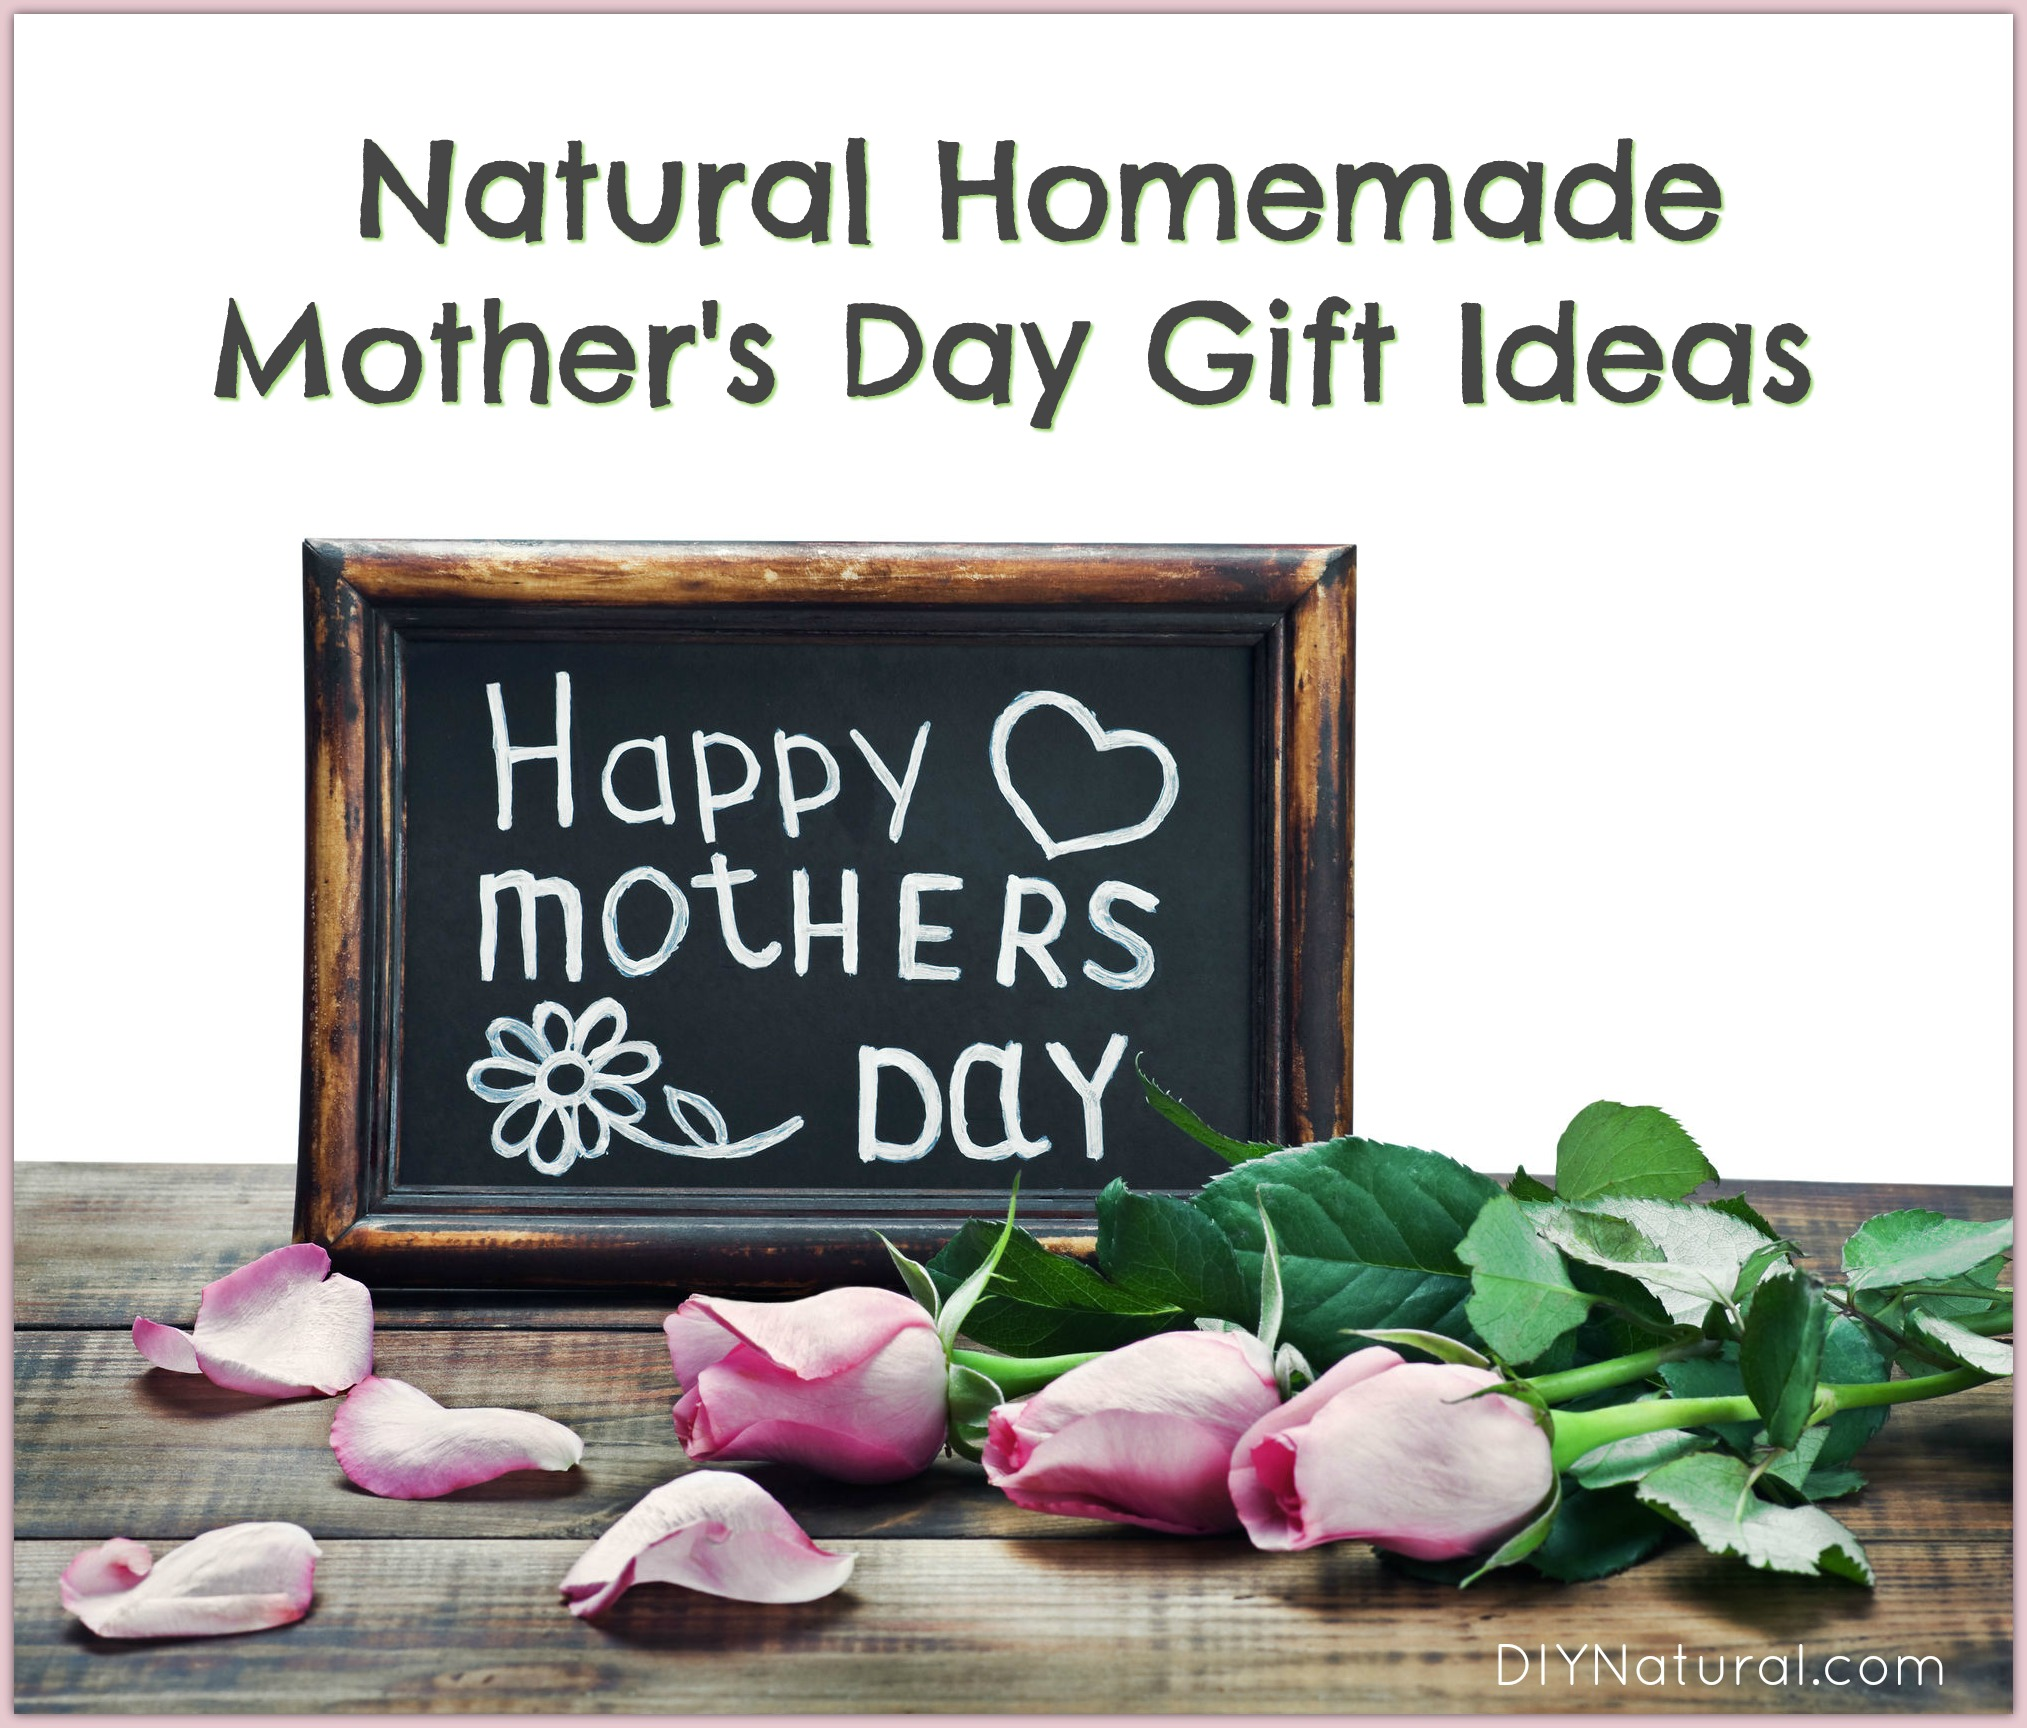 Natural Homemade Mother's Day Gifts To Give This Year